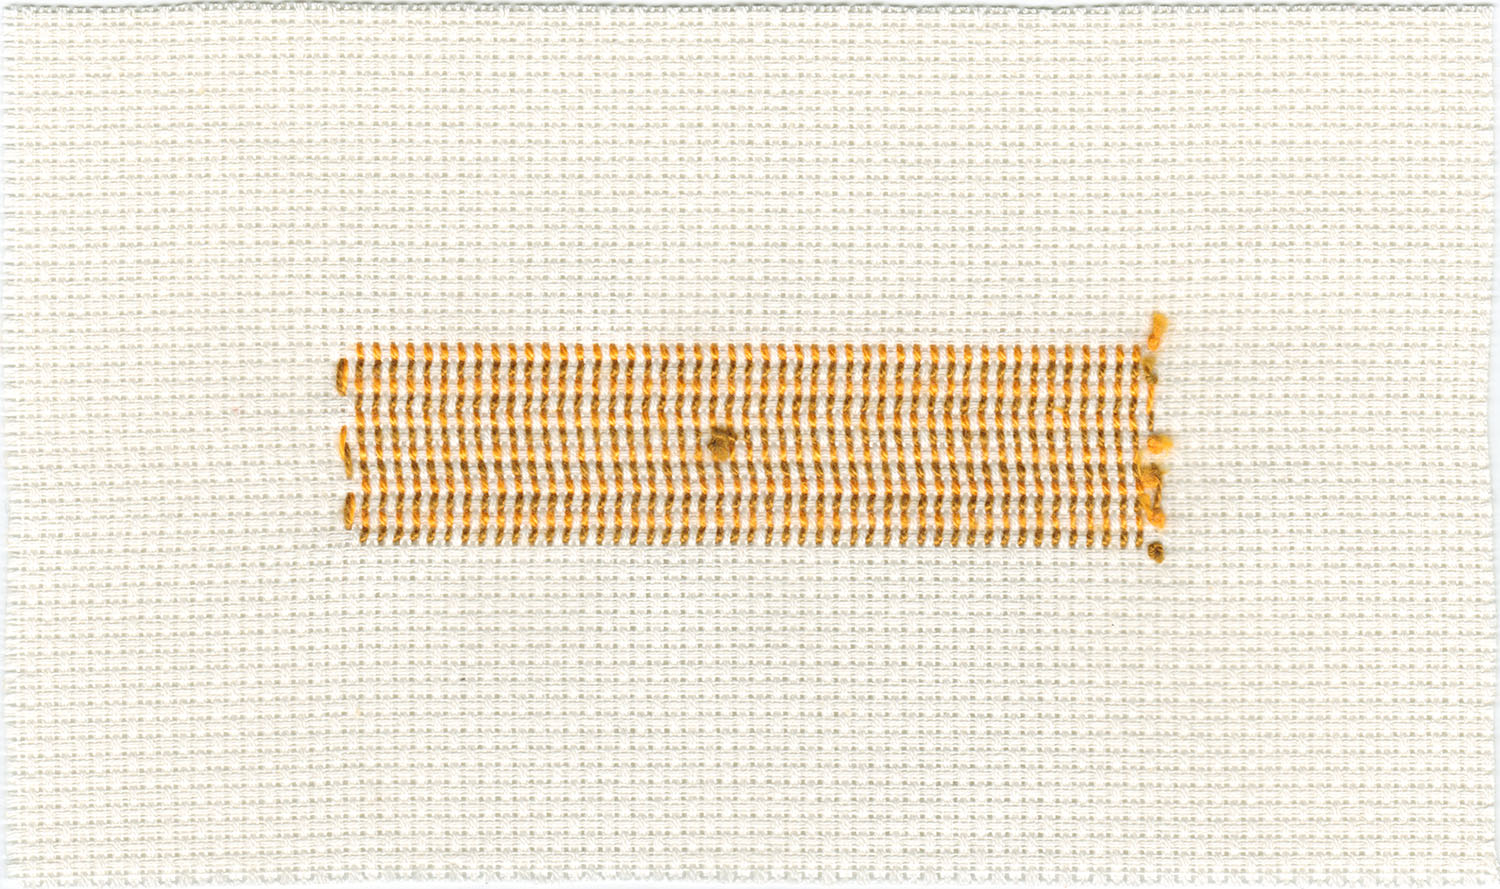 Colour Study in 576 Diagonal Stitches_1B_web.jpg